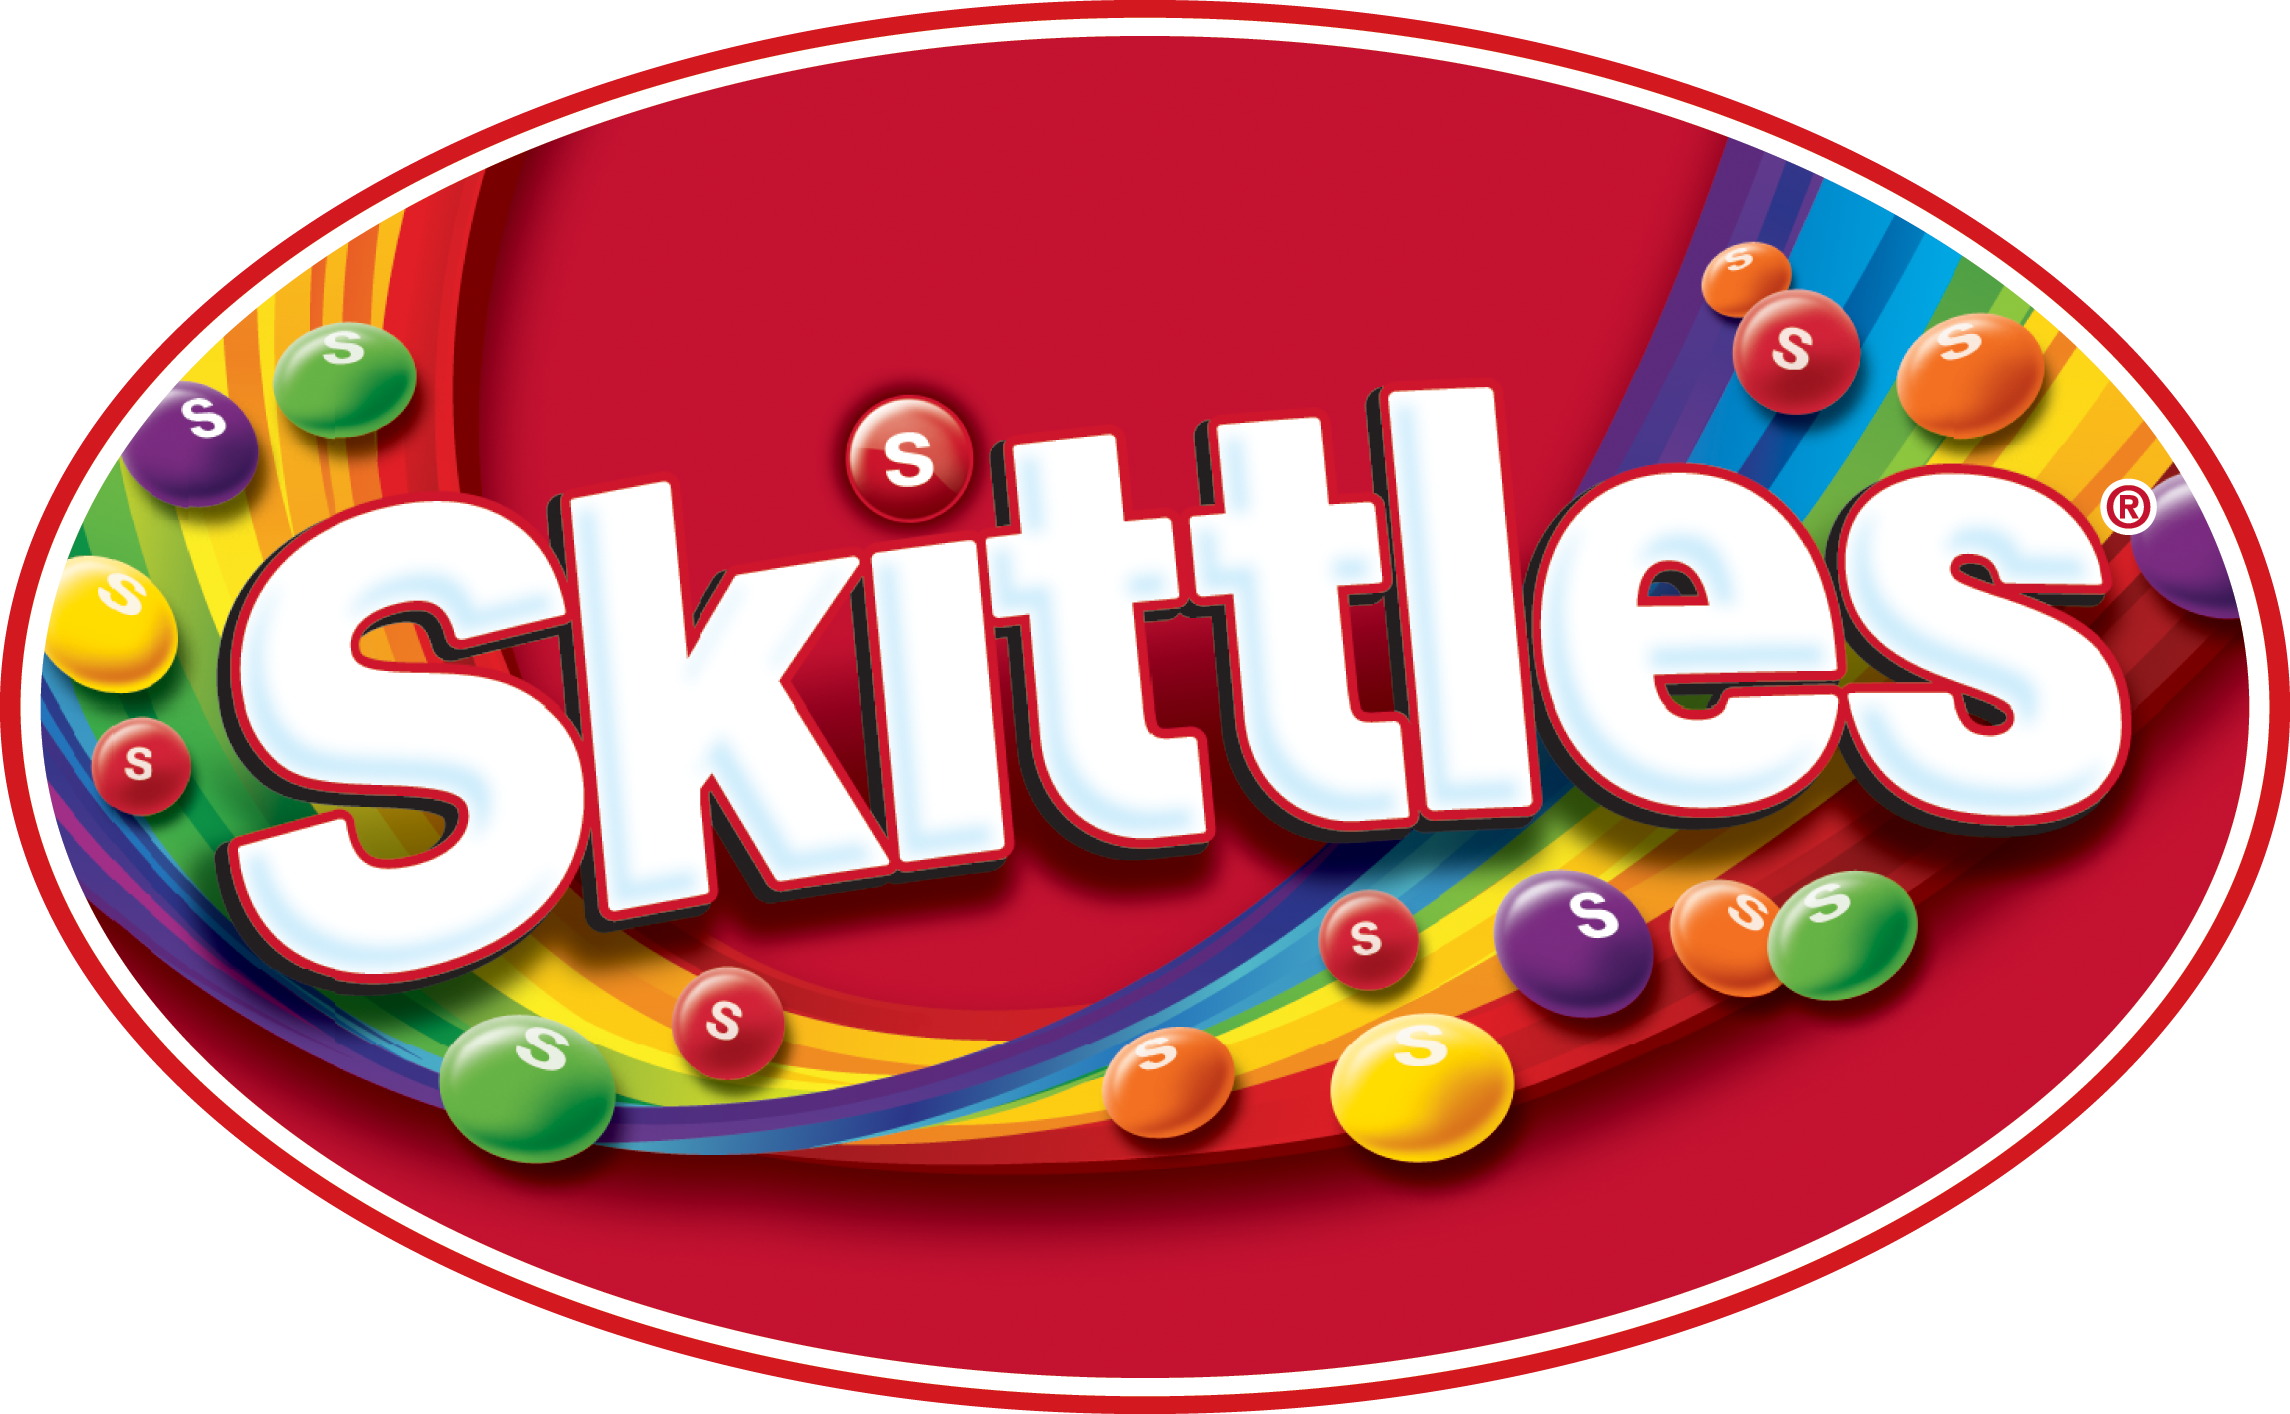 Skittles Clipart Clipground